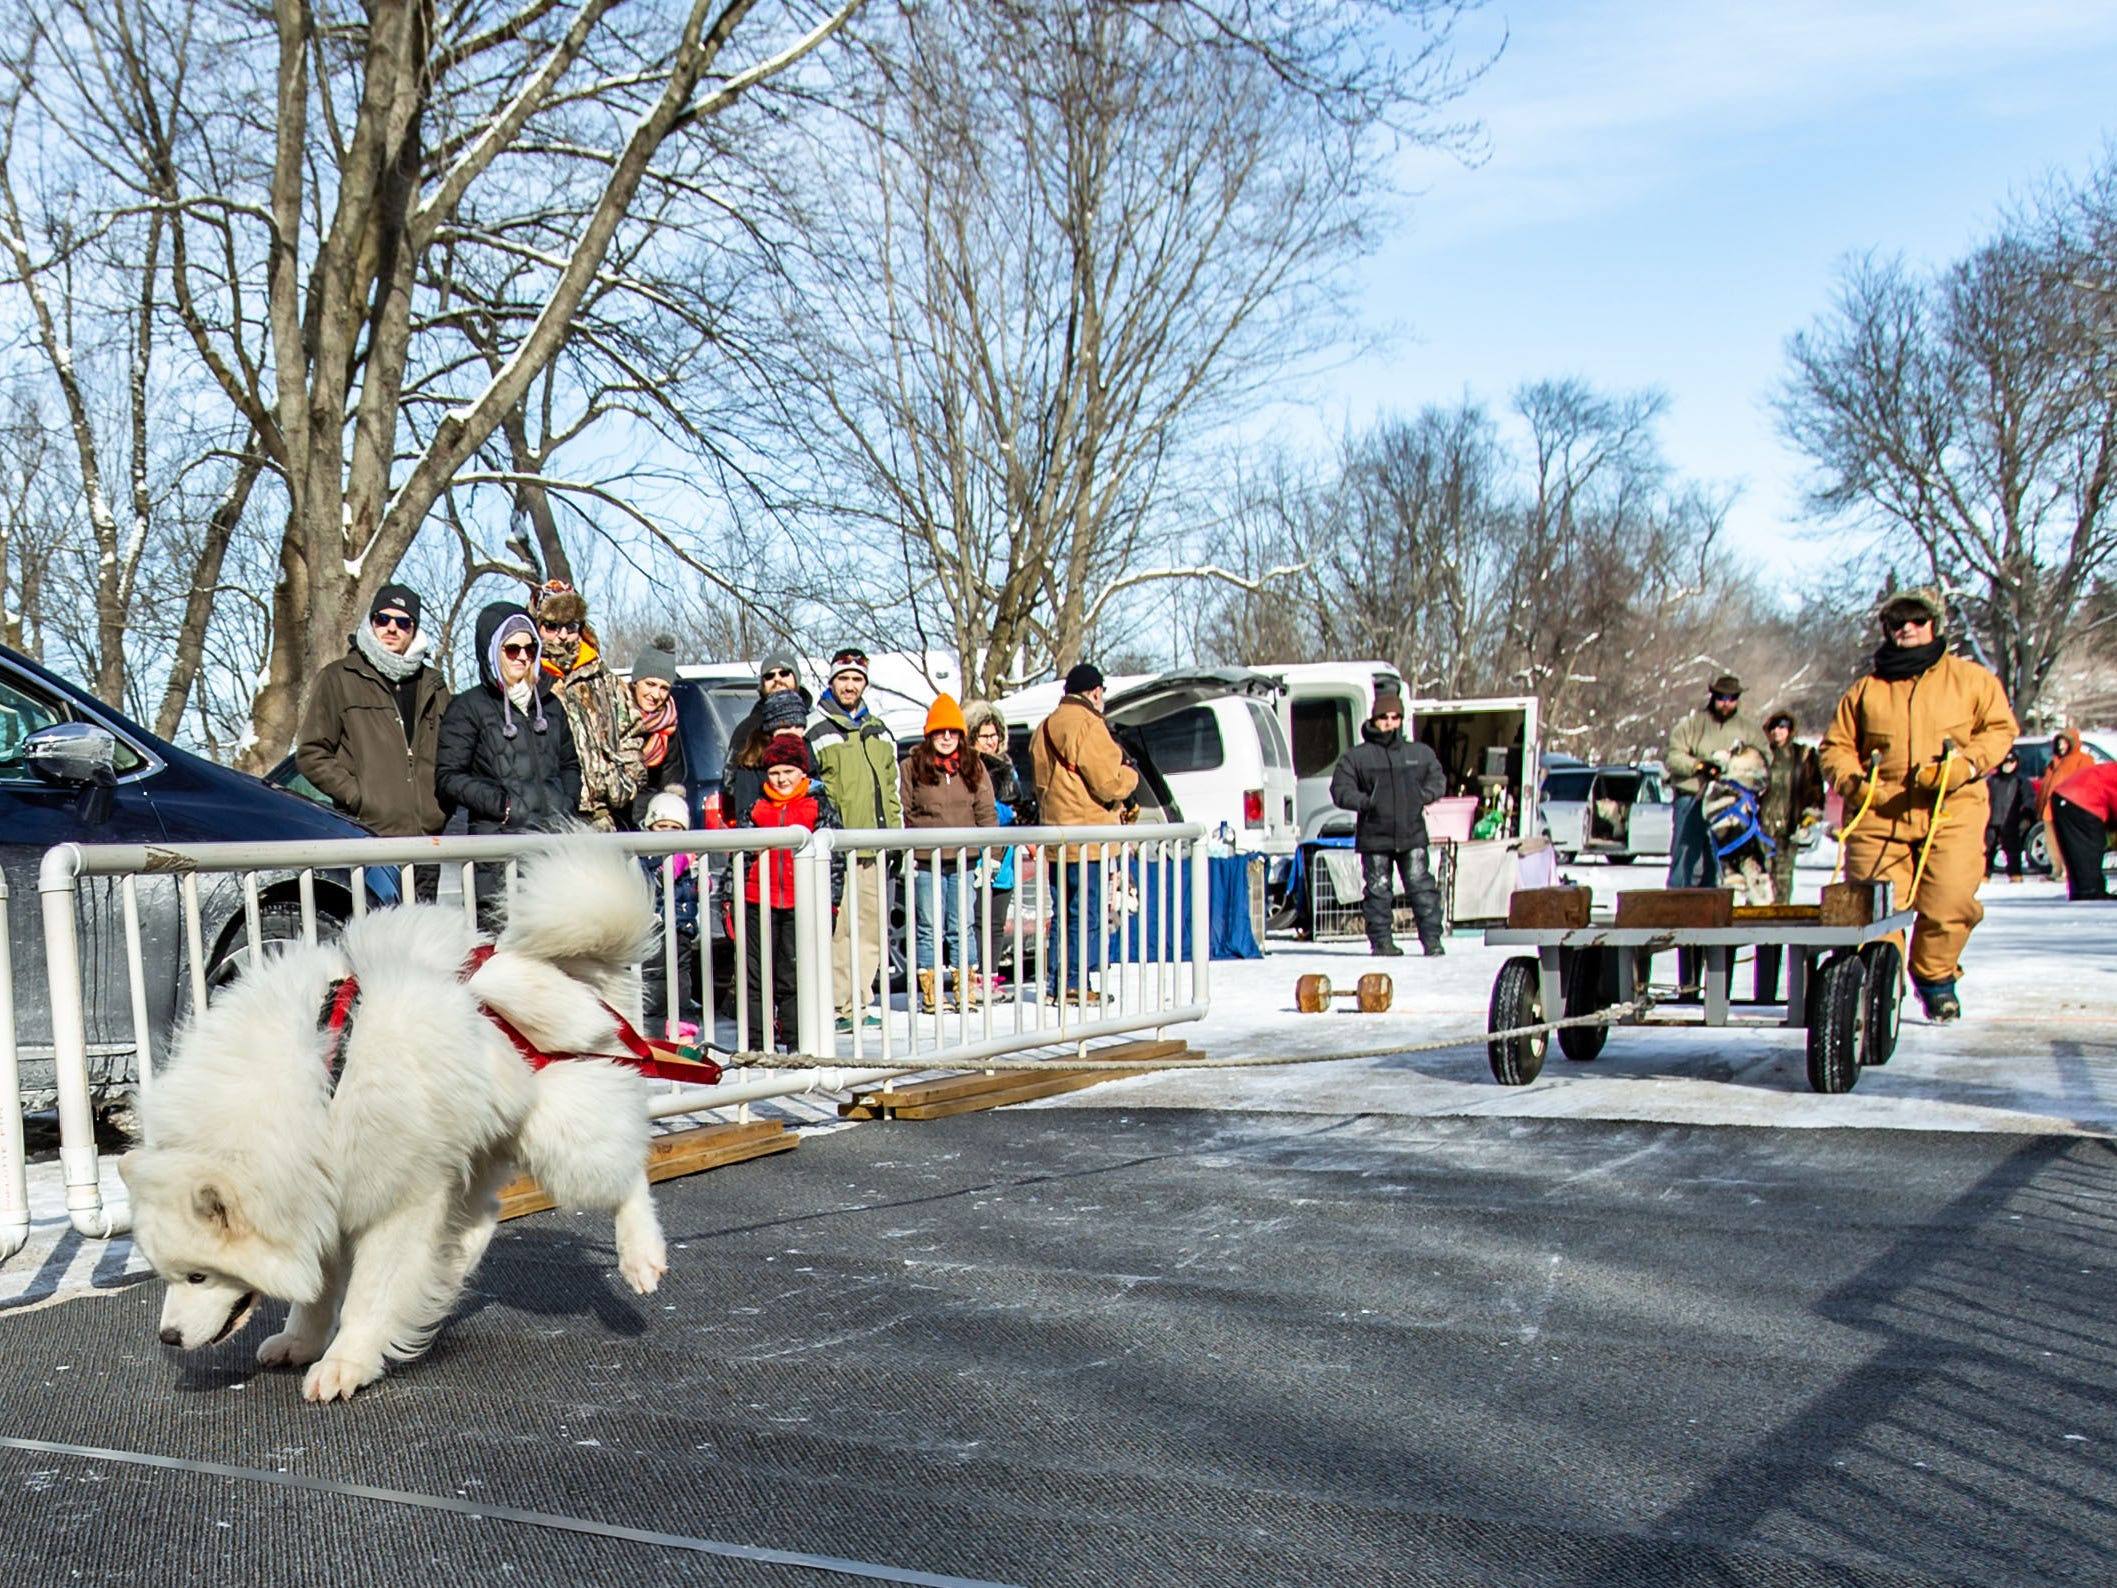 Spectators look on as a Samoyed named Winston competes in the Alaskan Malamute Dog Pull at Minooka Park in Waukesha during the 34th annual Waukesha JanBoree on Sunday, Jan. 27, 2019. The event was hosted by the Alaskan Malamute Club of Wisconsin.